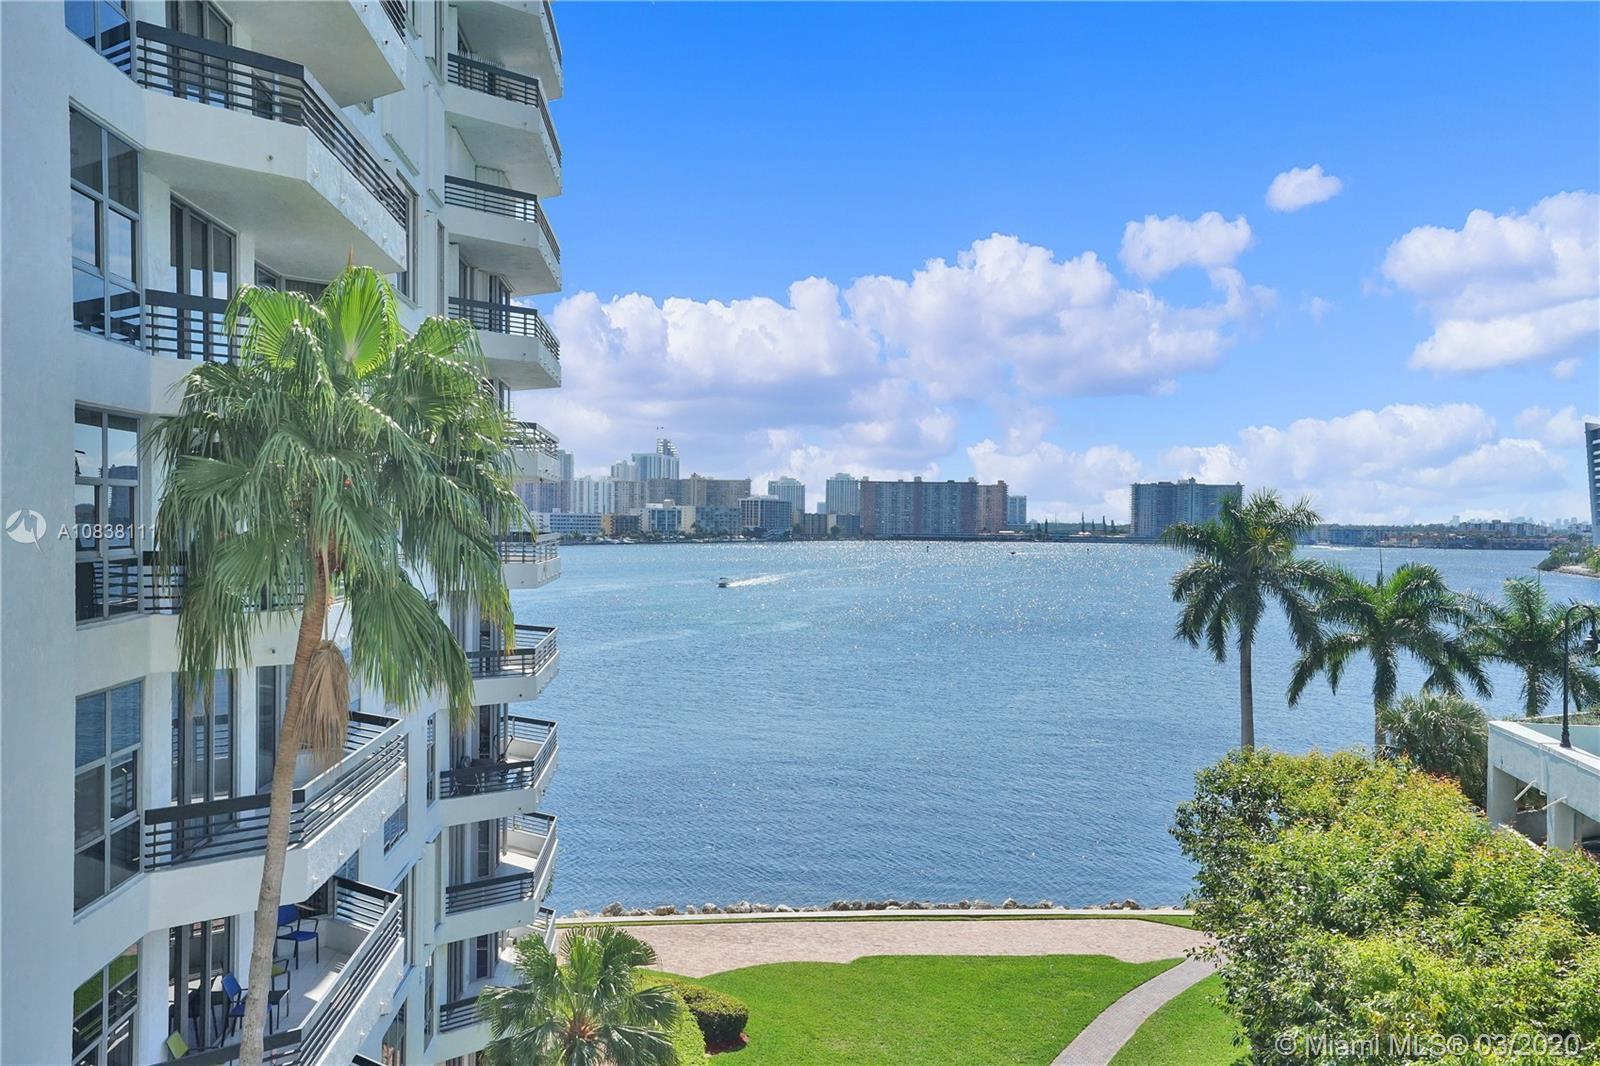 FOR SALE MYSTIC POINTE 200, 2/2 CONDO PRICED AT $333,500!!! LOCATED ON A SPECTACULAR PRIVATE COMMUNI